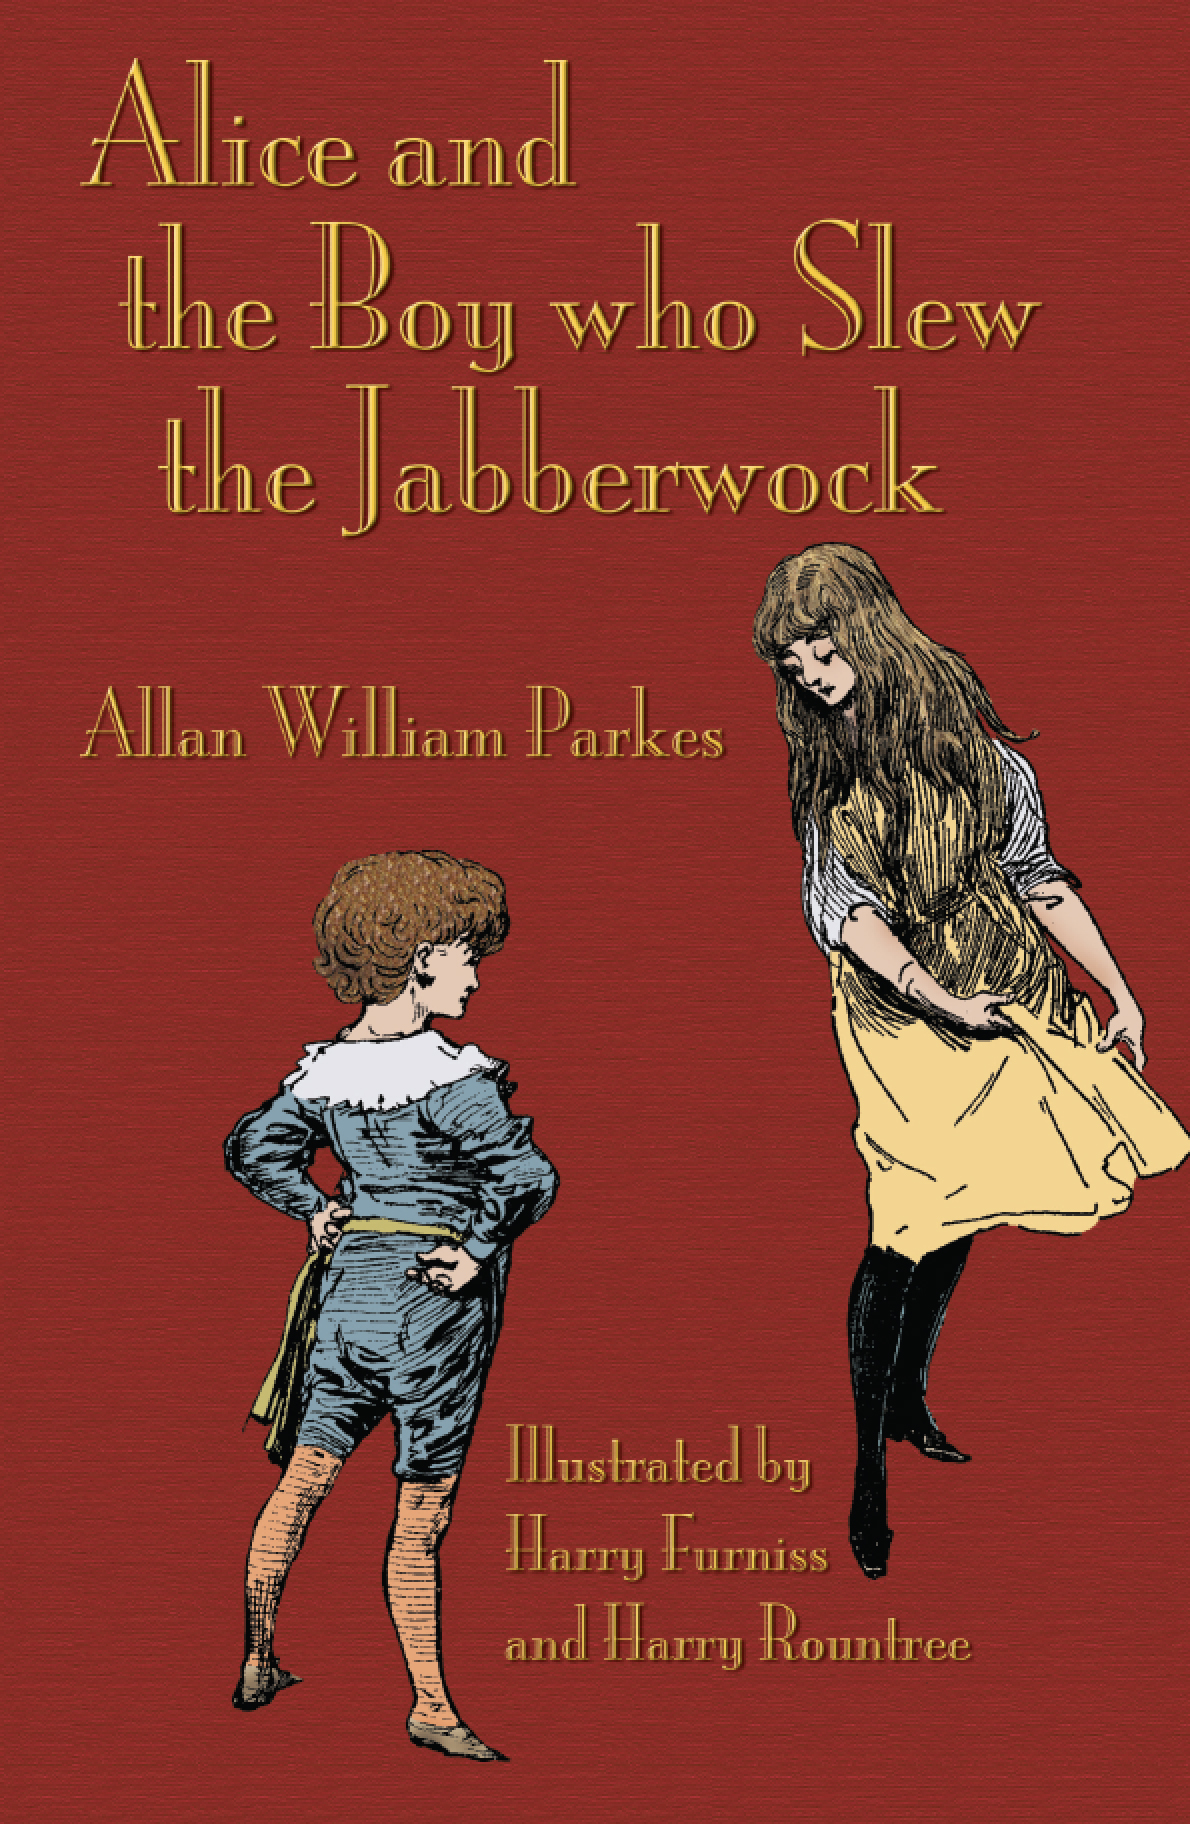 Alice and the Boy who Slew the Jabberwock